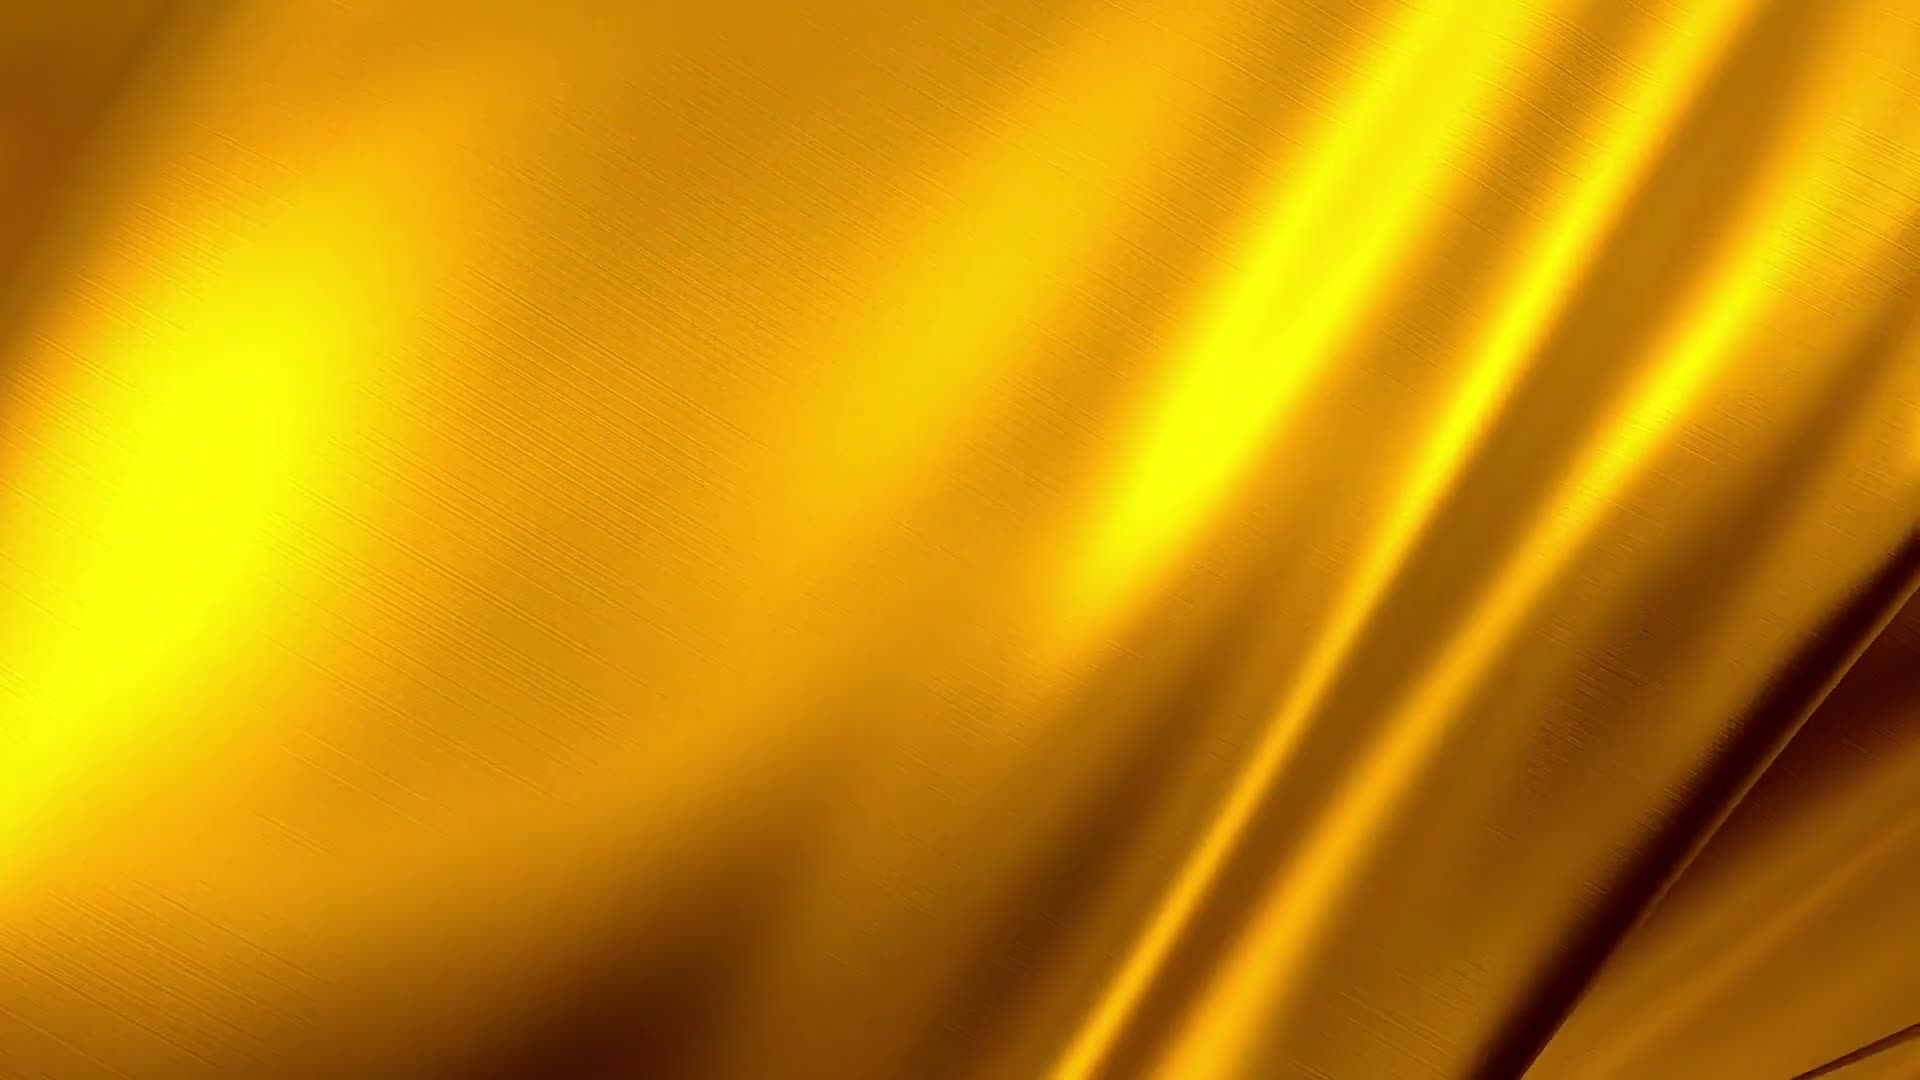 Waves smooth gold abstract background